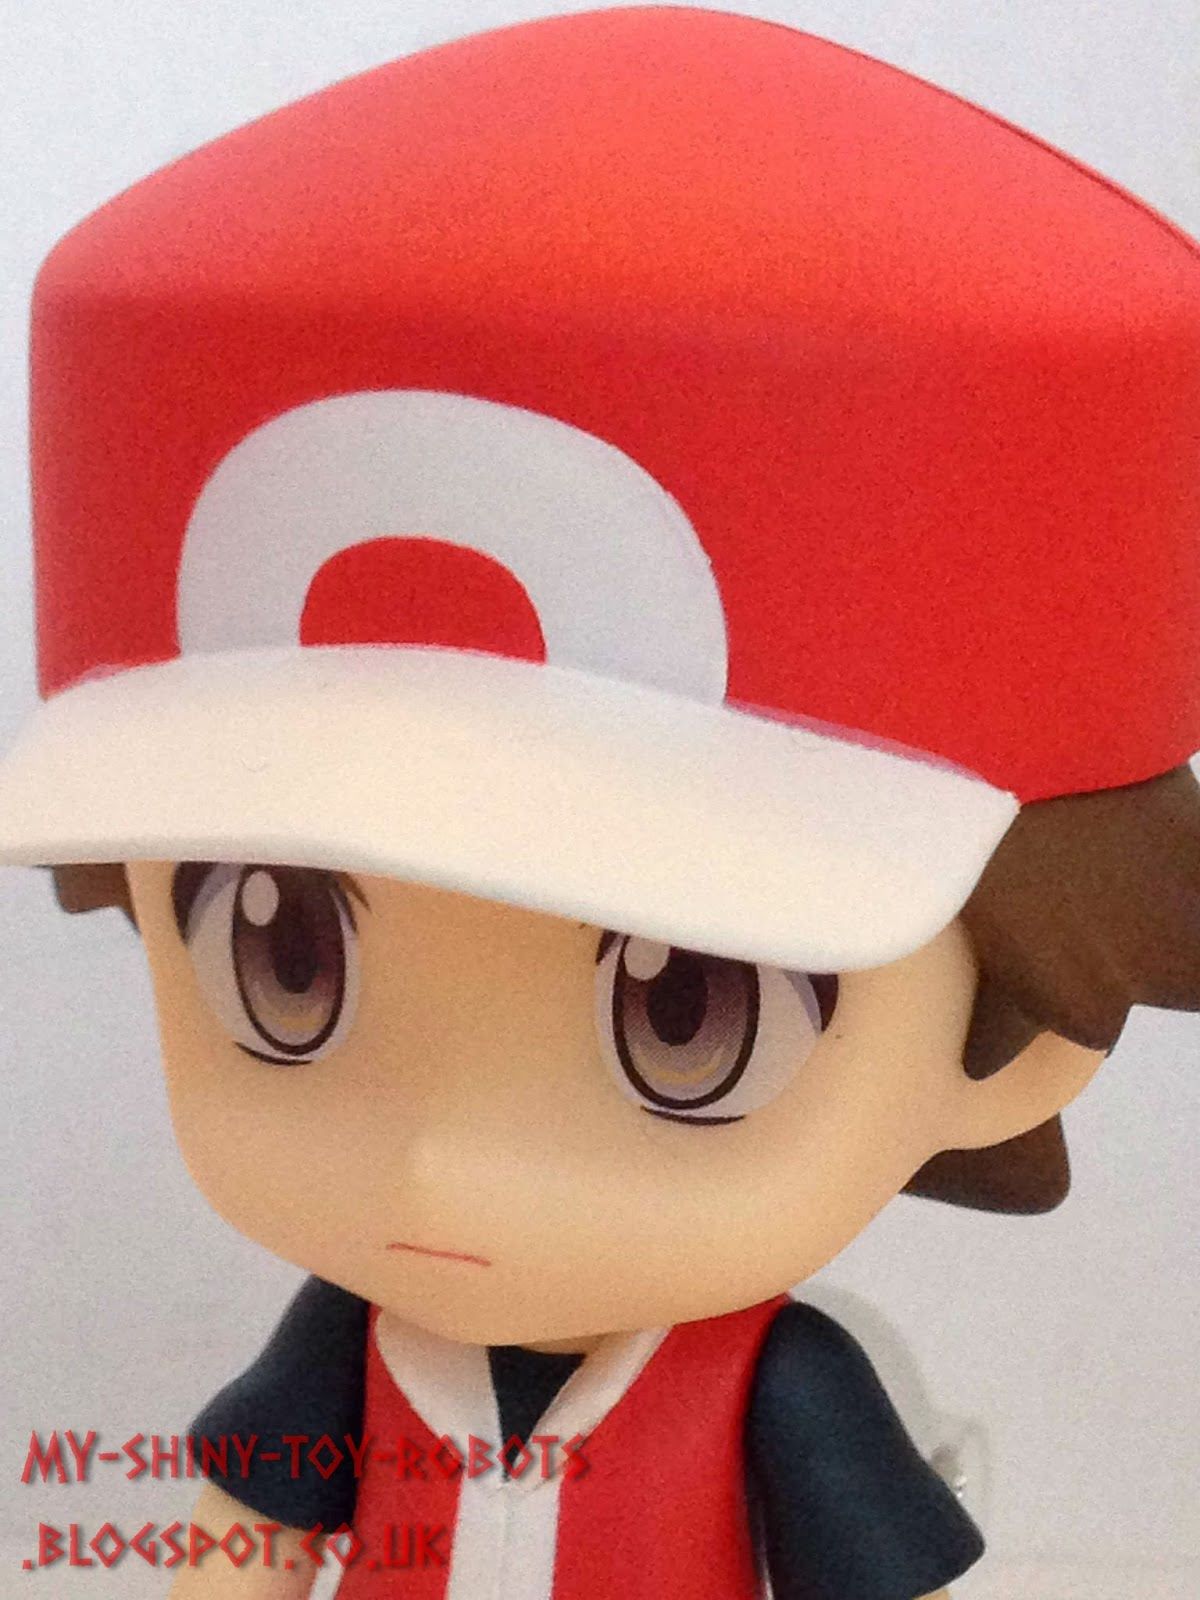 Nendoroid Red (Pokémon Trainer)